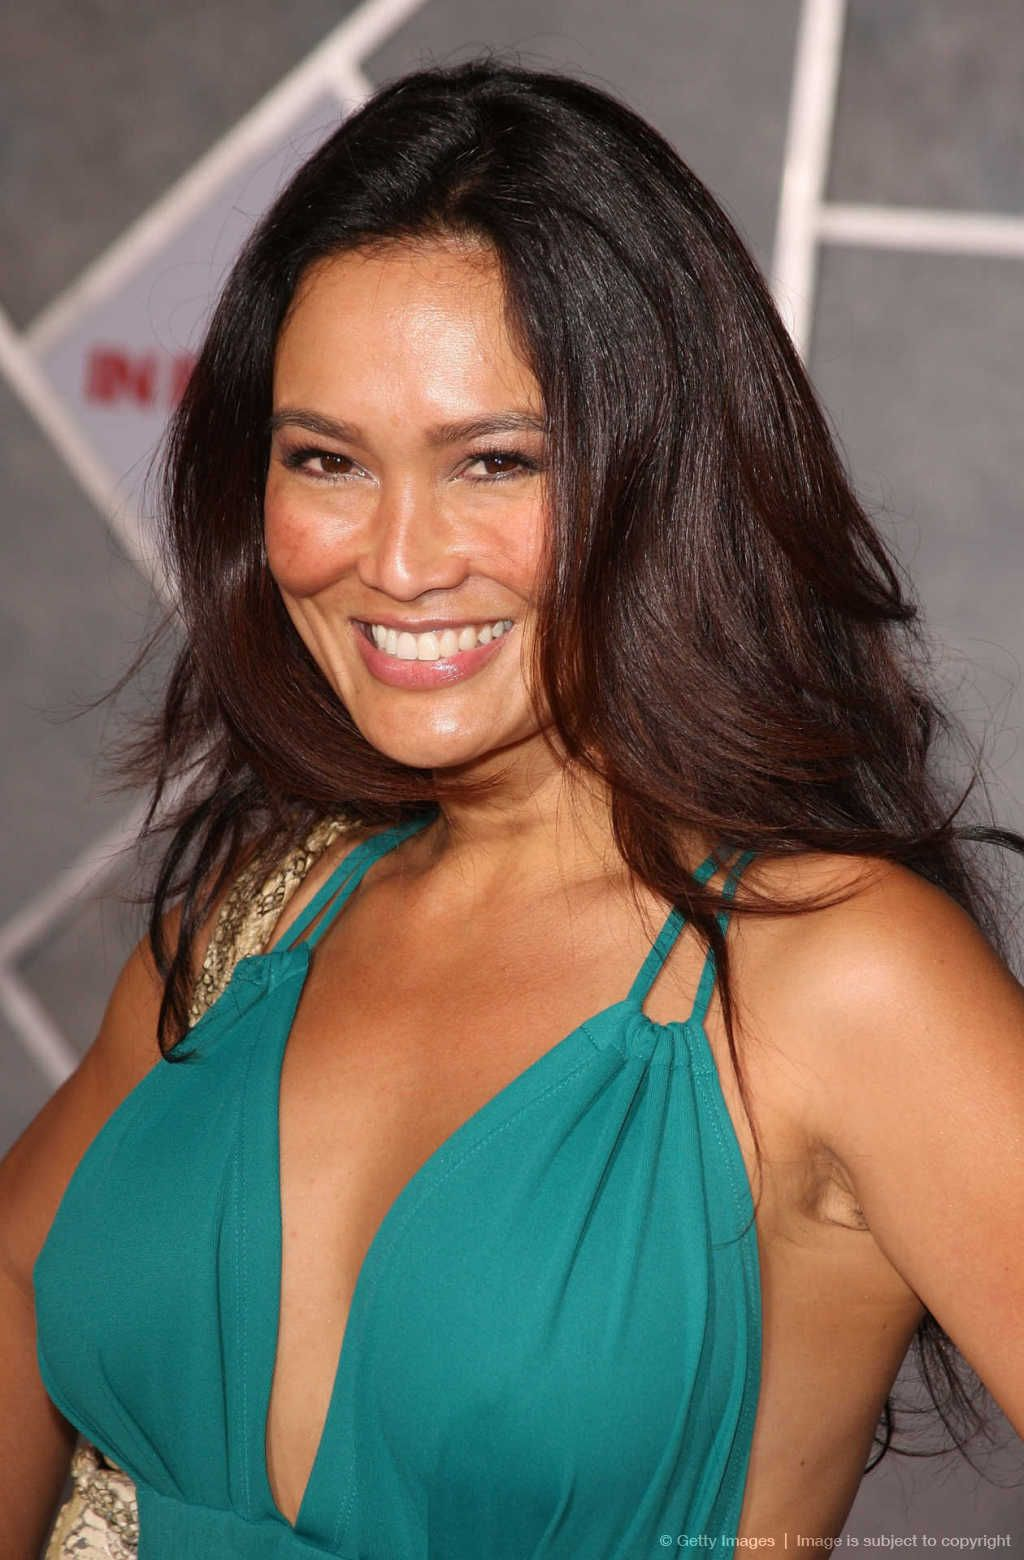 Snapchat Tia Carrere nudes (83 foto and video), Ass, Fappening, Boobs, bra 2019